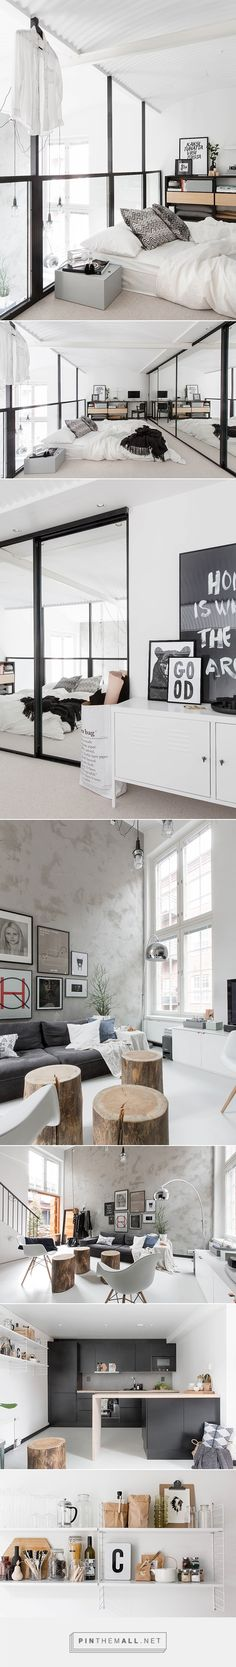 Cool scandinavian loft | My Paradissi - created via http://pinthemall.net